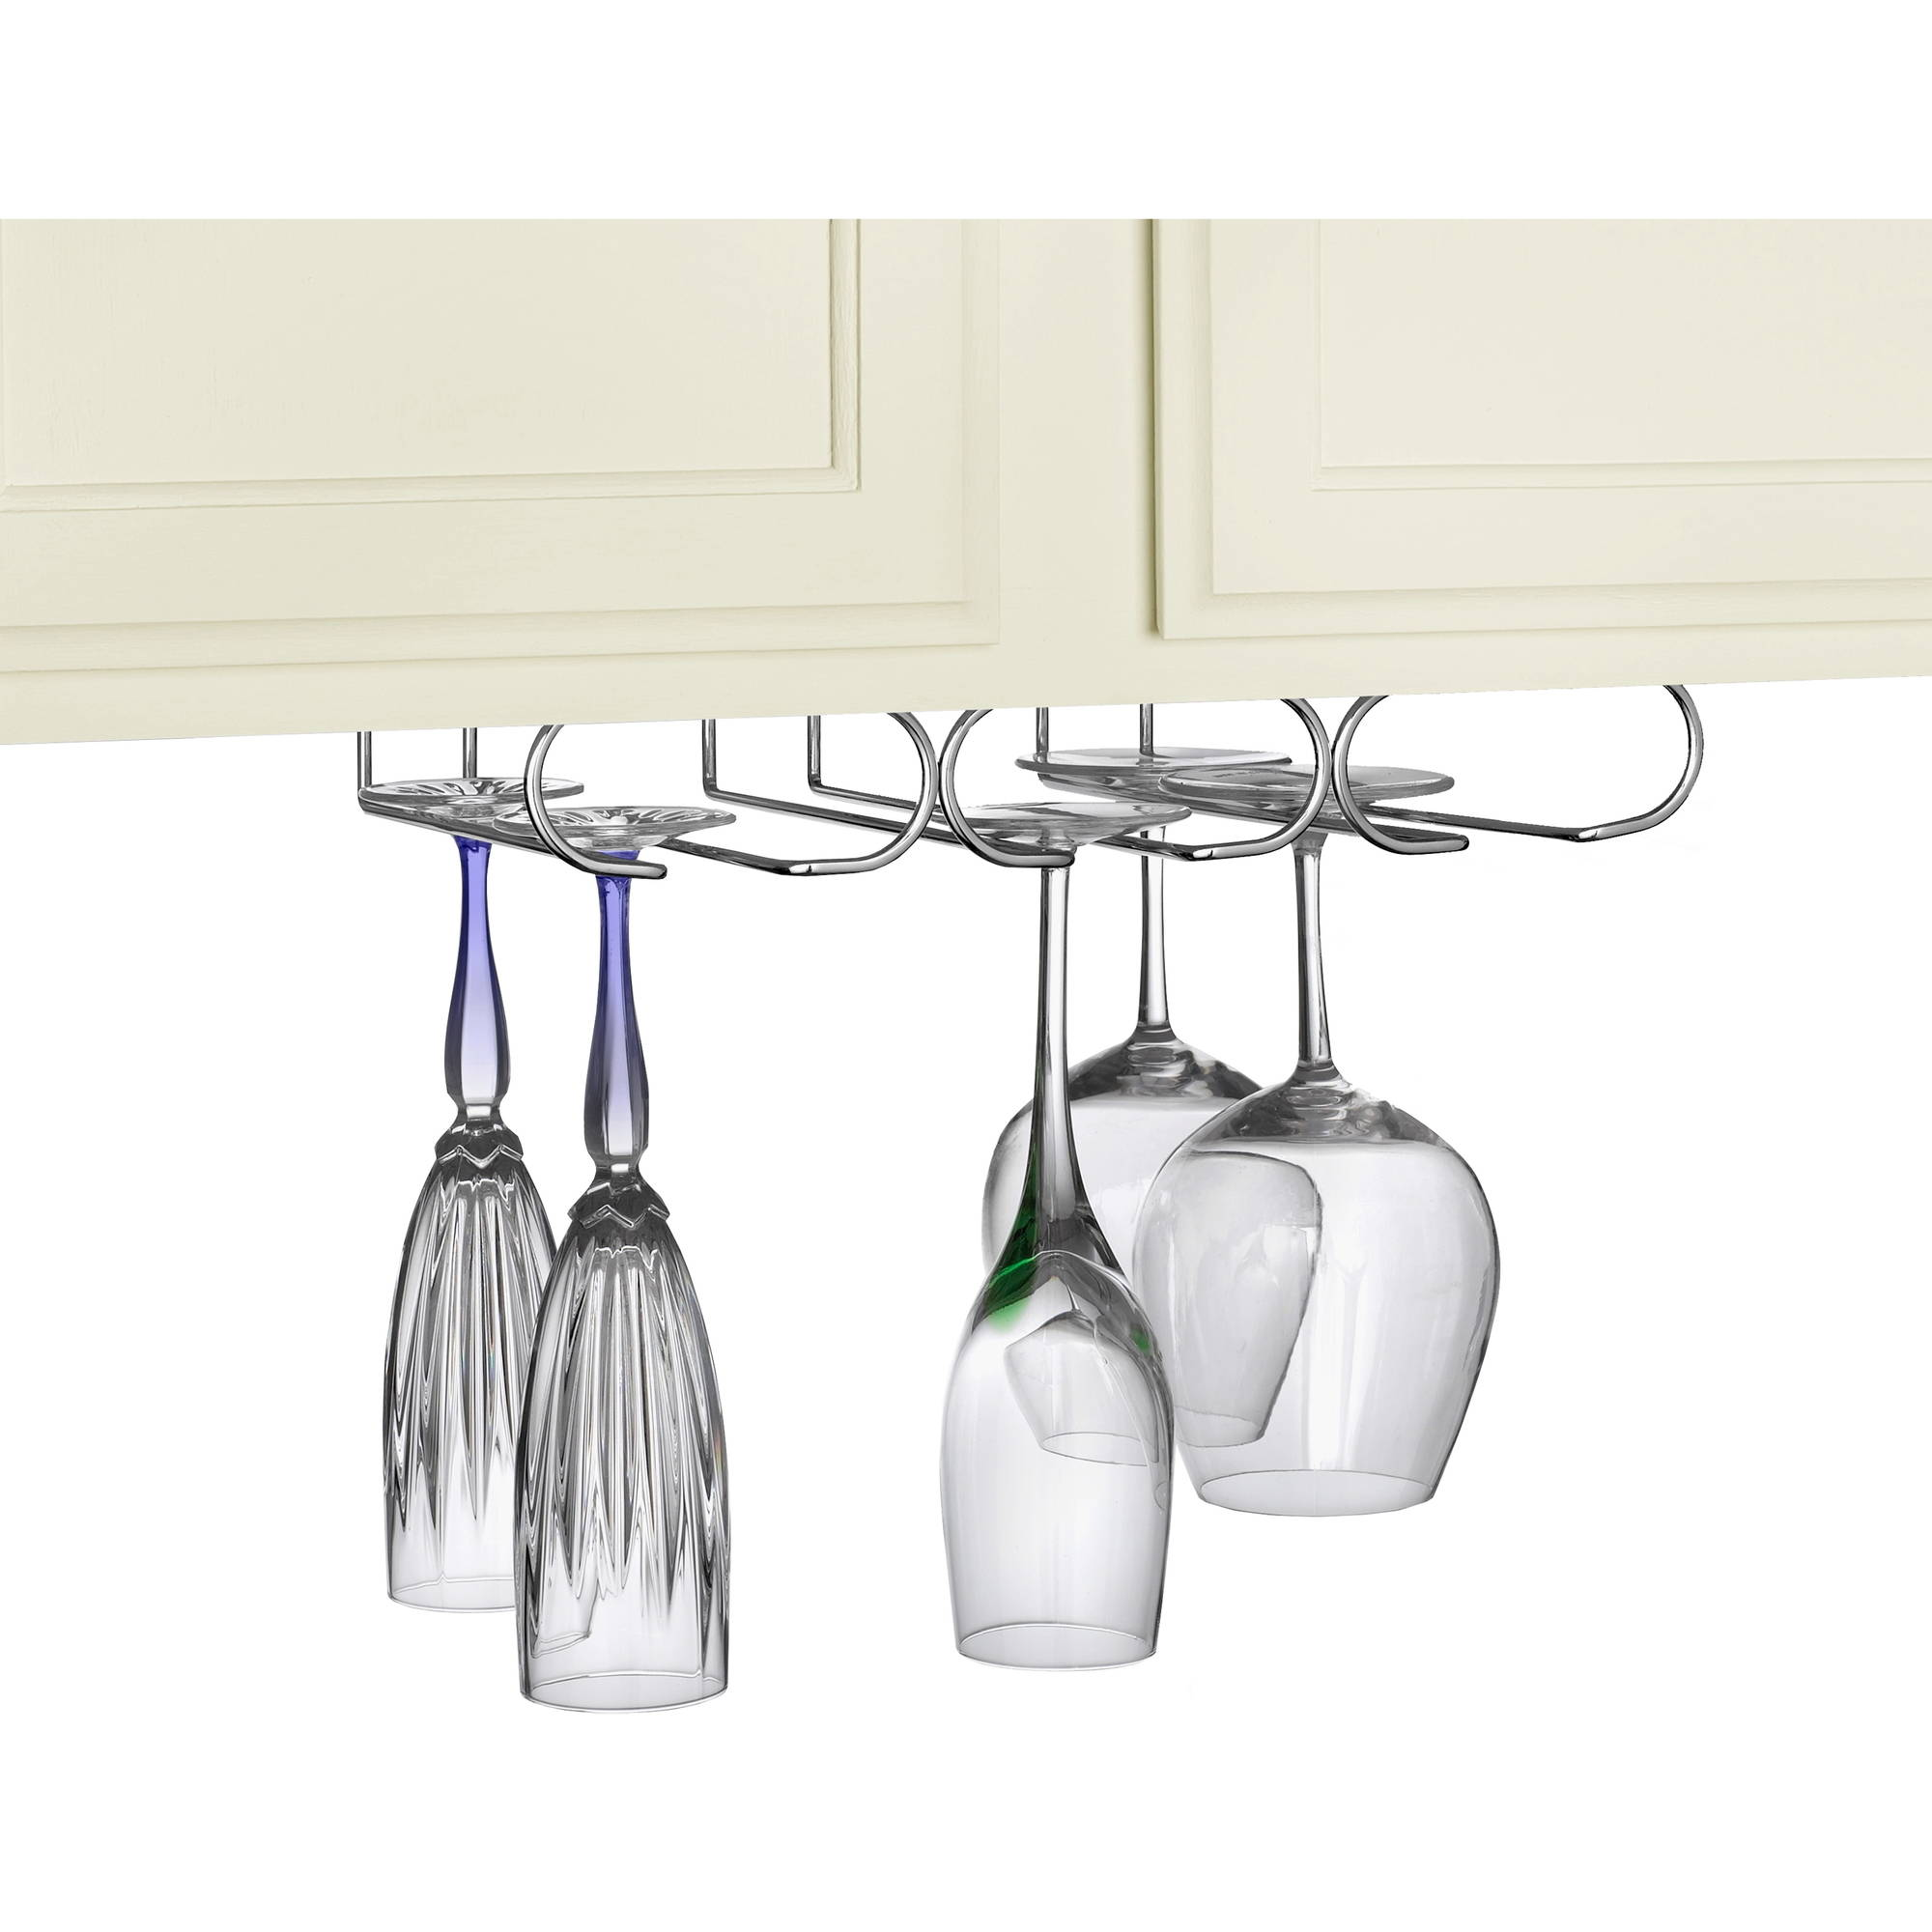 under cabinet wine glass rack. Under Cabinet Wine Glass Rack A